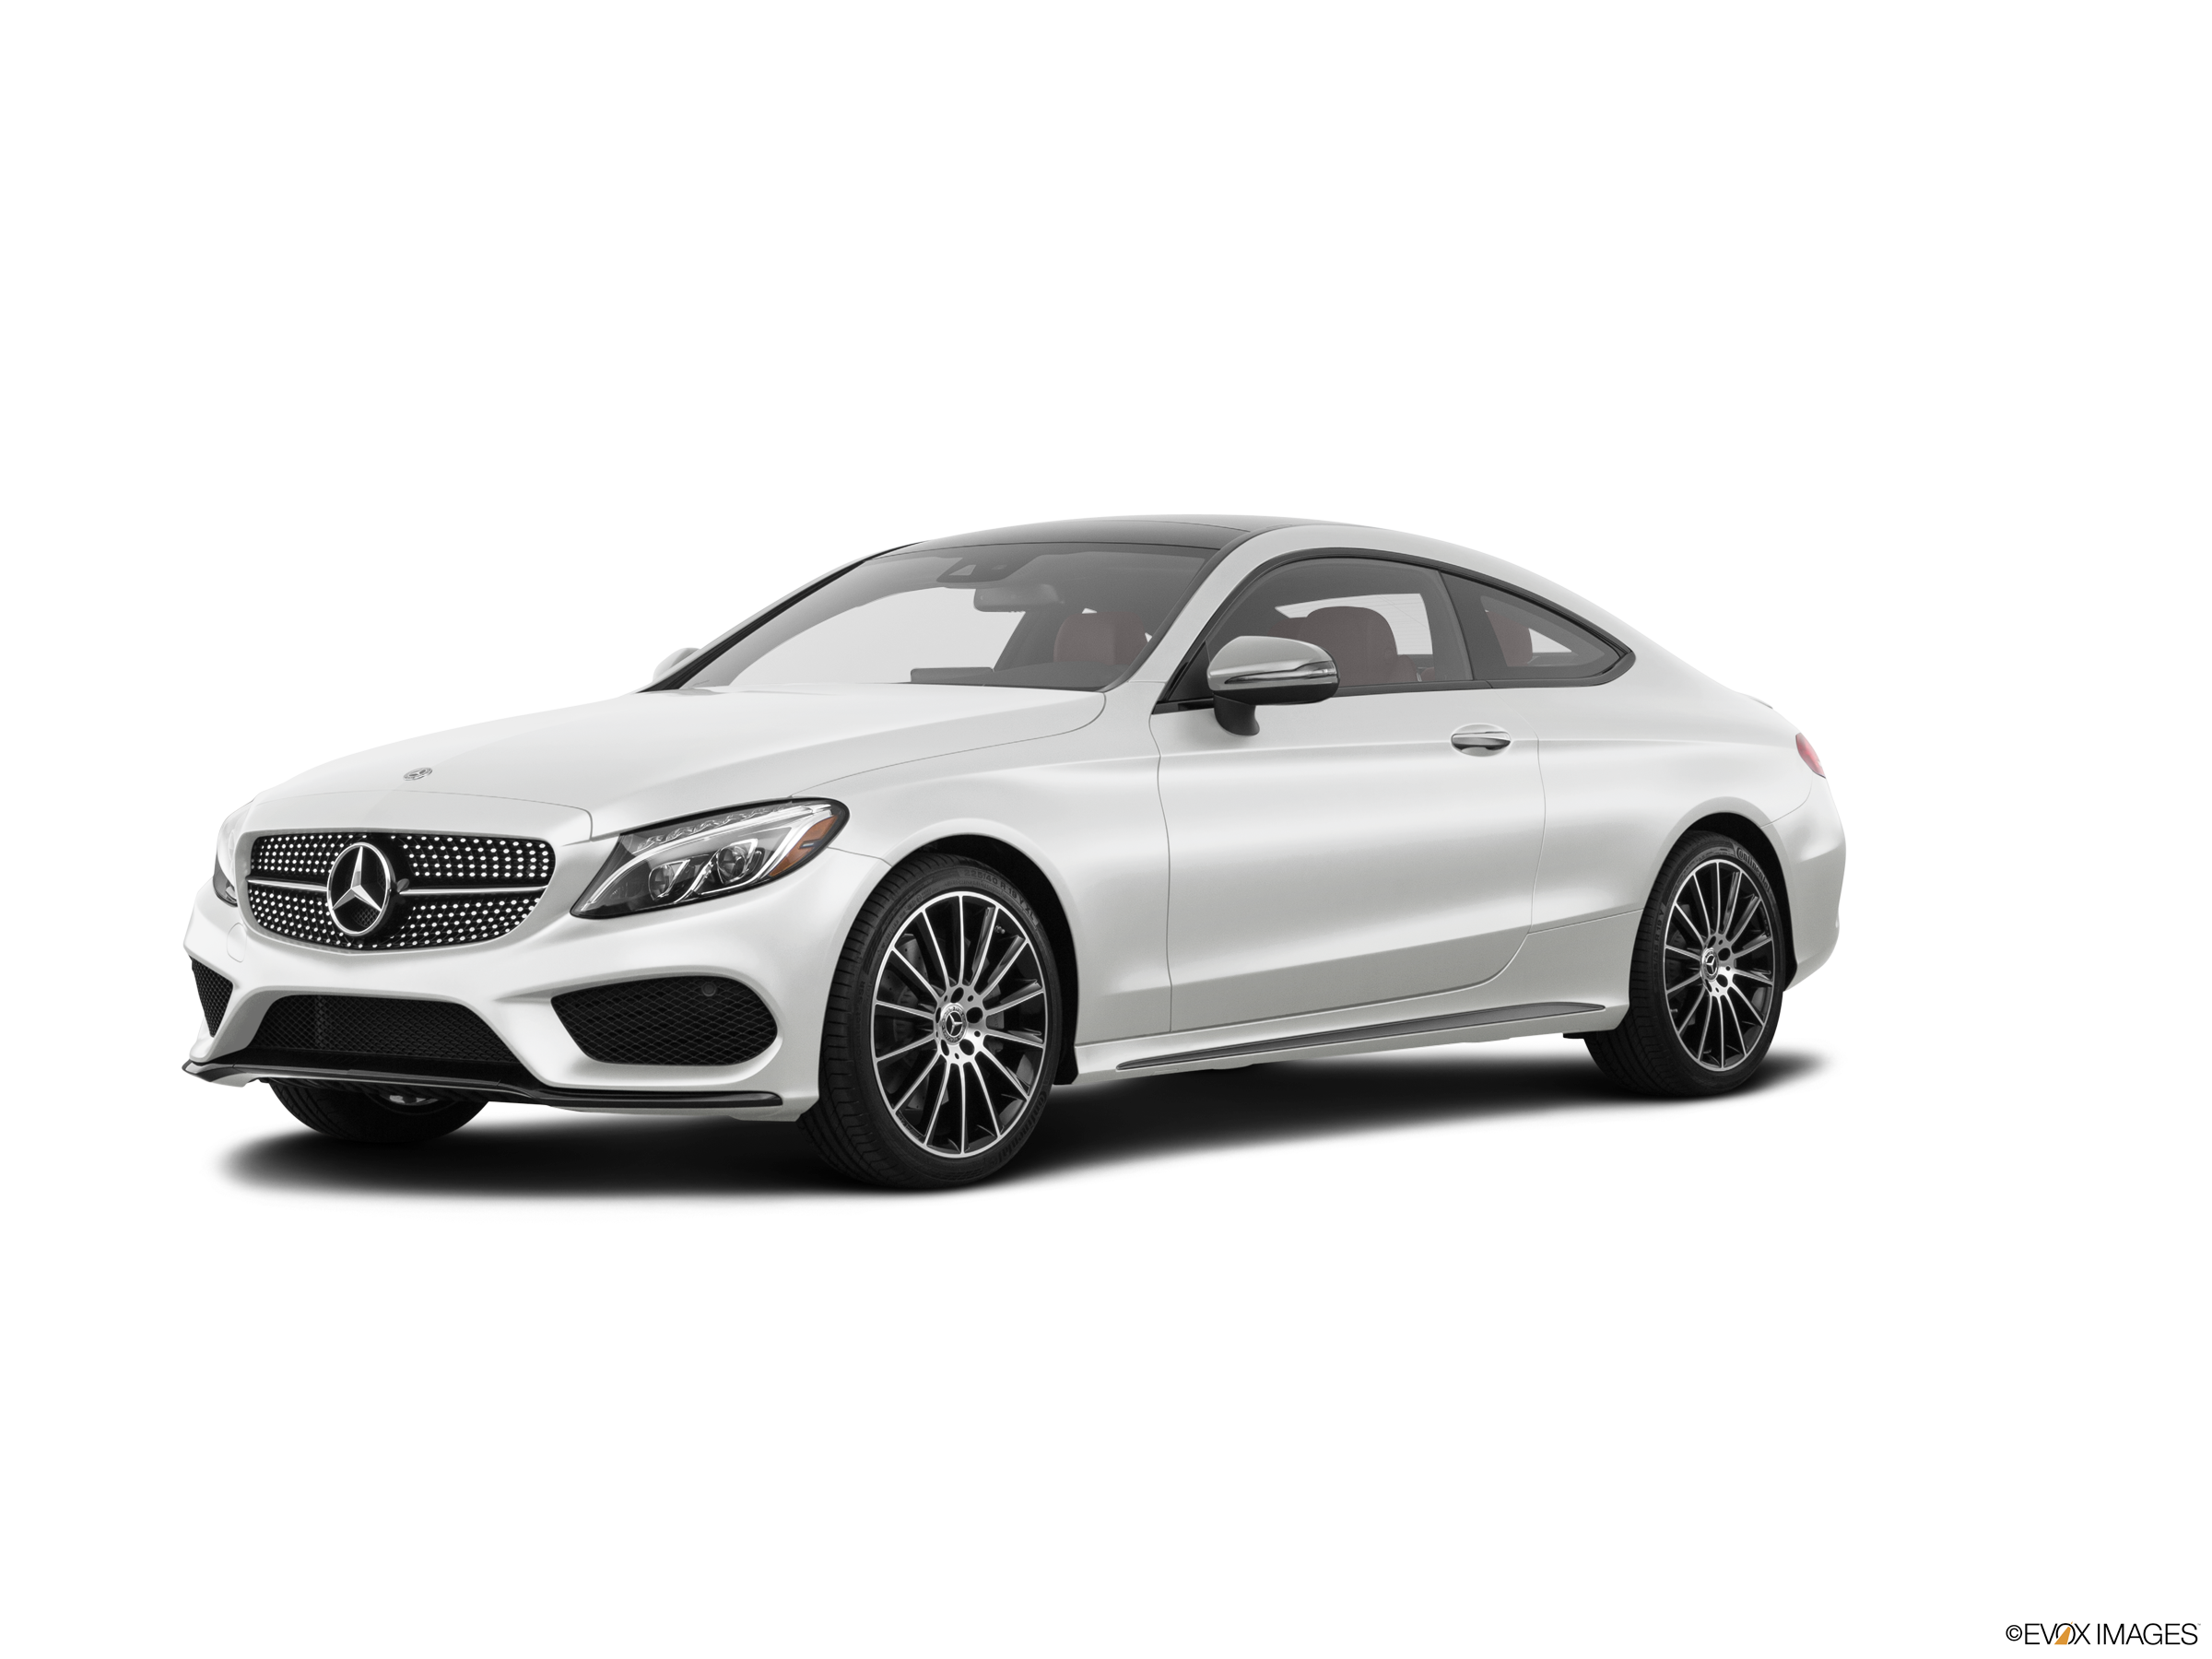 Top Expert Rated Luxury Vehicles of 2018 - 2018 Mercedes-Benz C-Class